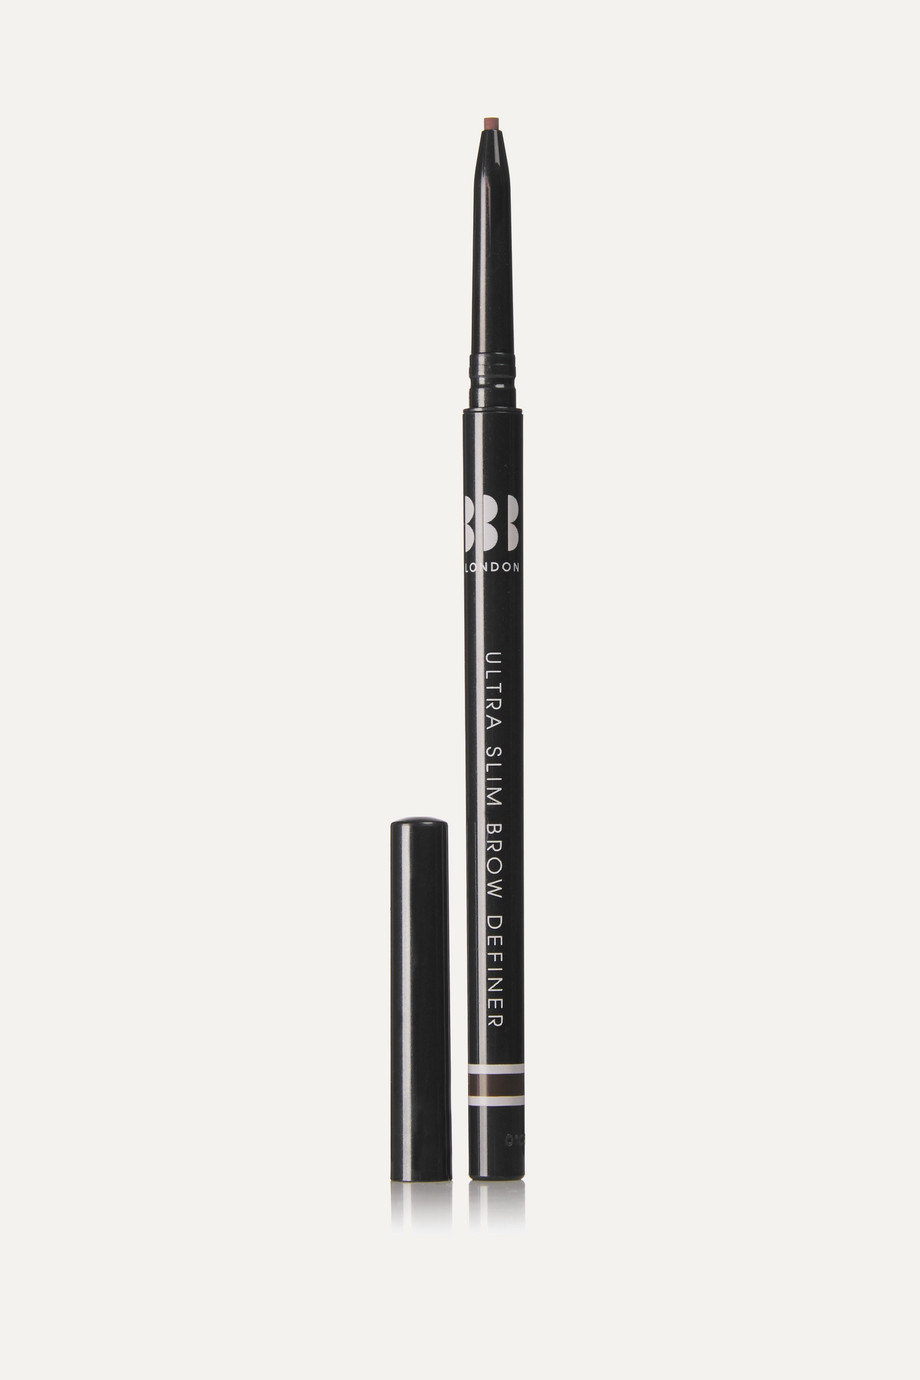 BBB LONDON Ultra Slim Brow Definer - Indian Chocolate